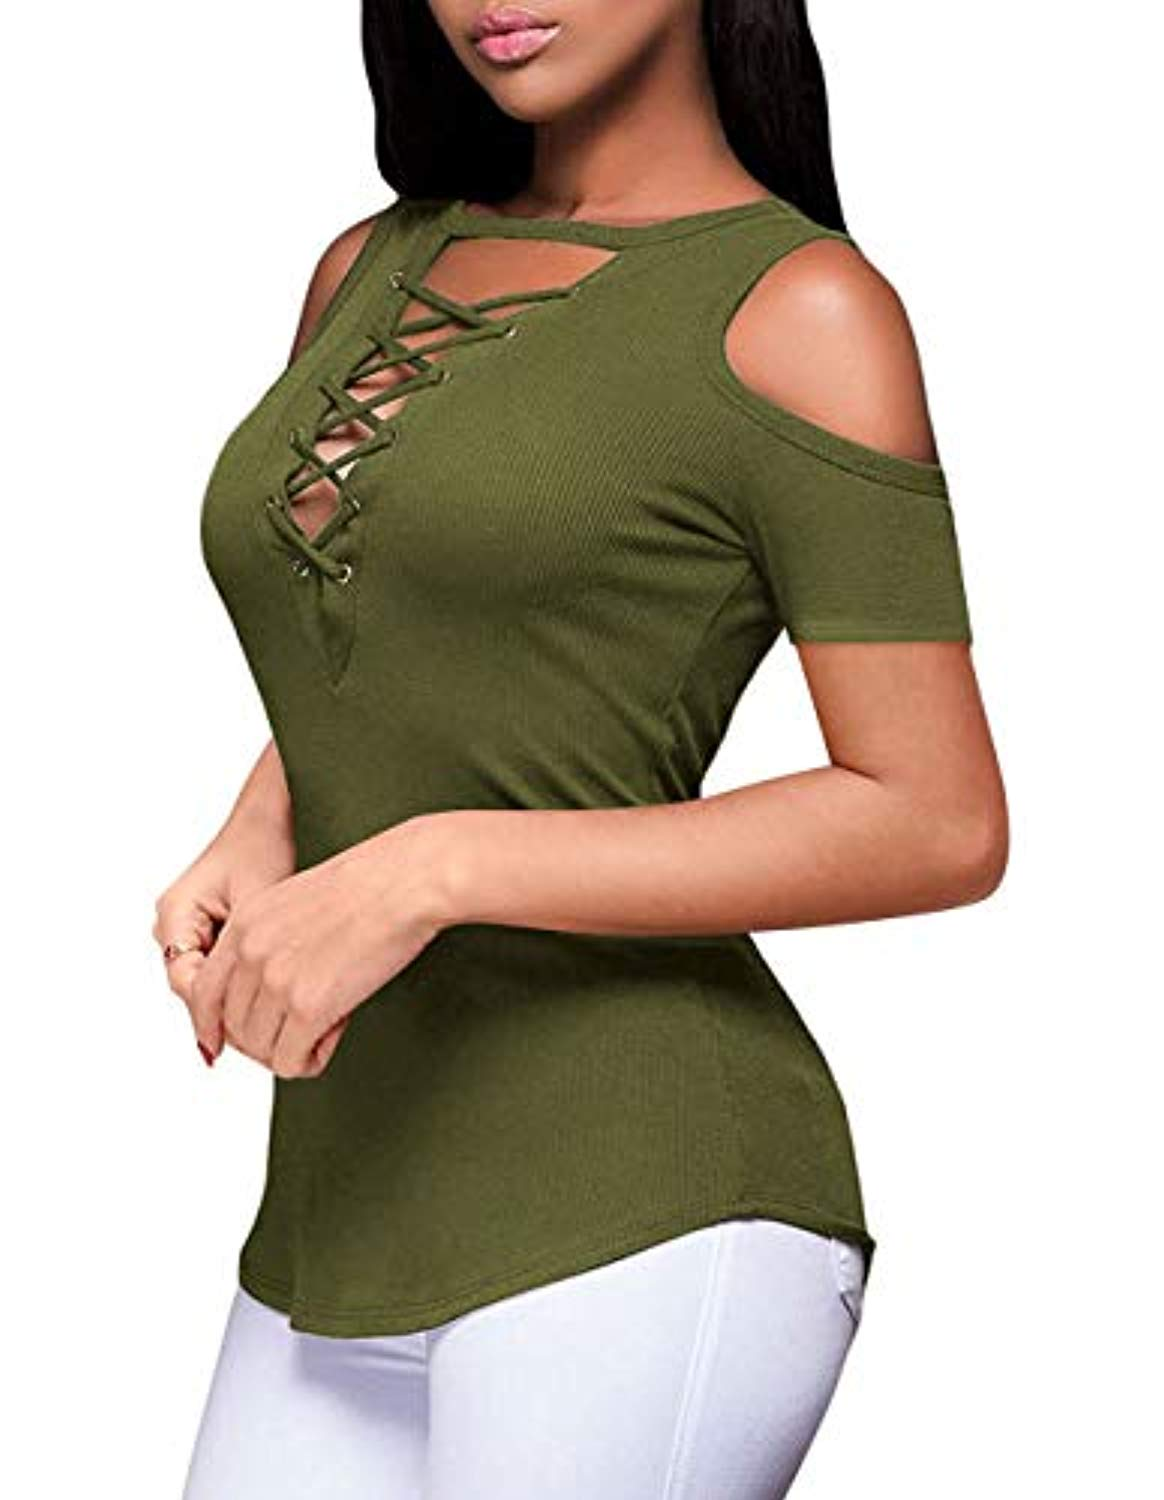 Women's Summer Sexy V-Neck Cold Shoulder Short Sleeve Blouse Slim Lace-up Ribbed Tops Stretchy Casual T-Shirts